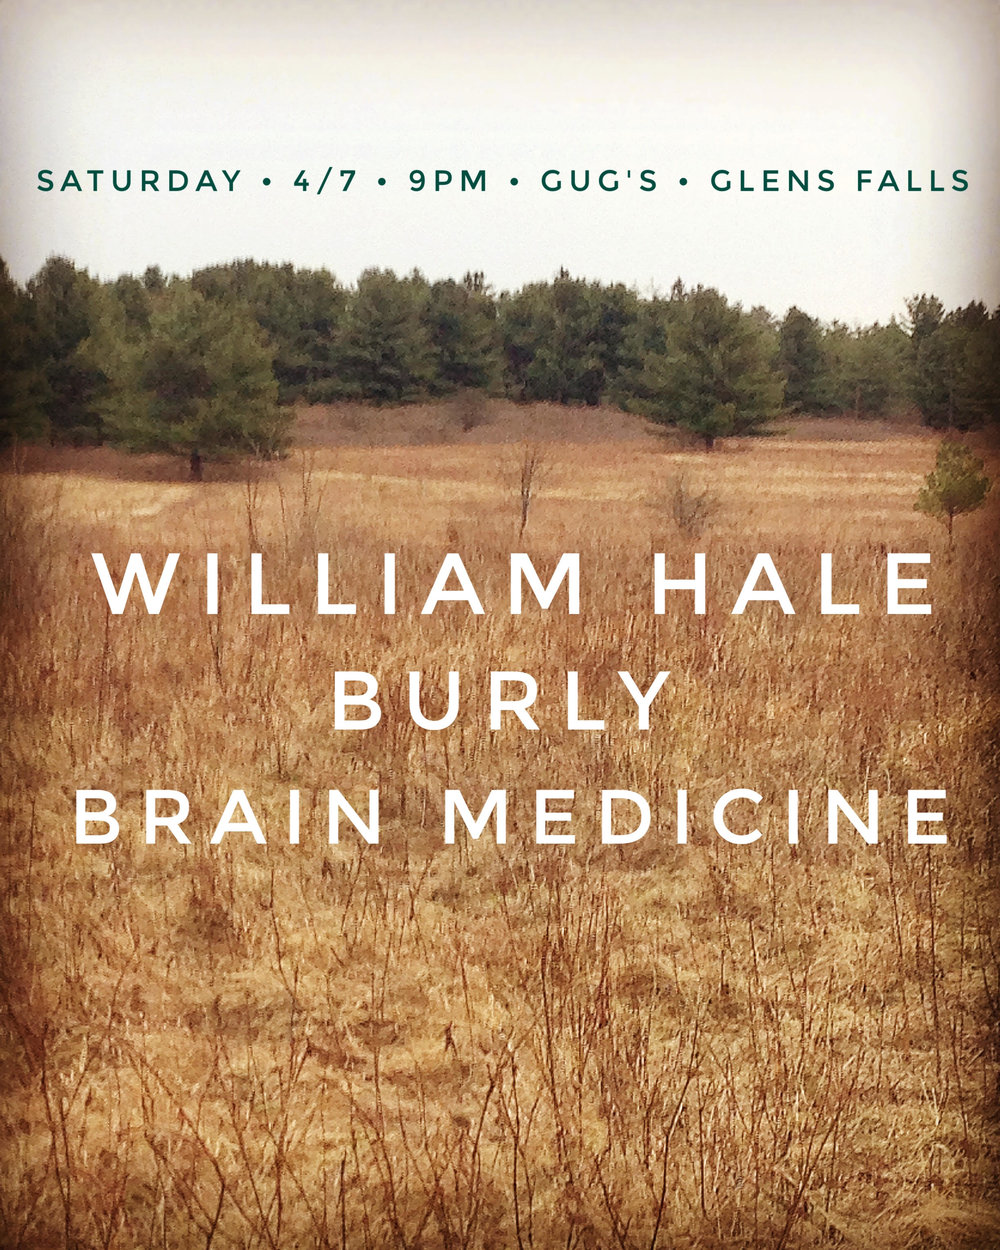 show coming up saturday april 7th in glens falls with william hale and brain medicine.  we will be playing our longest set ever. still probably less than 30 minutes.  see you there.  -burly